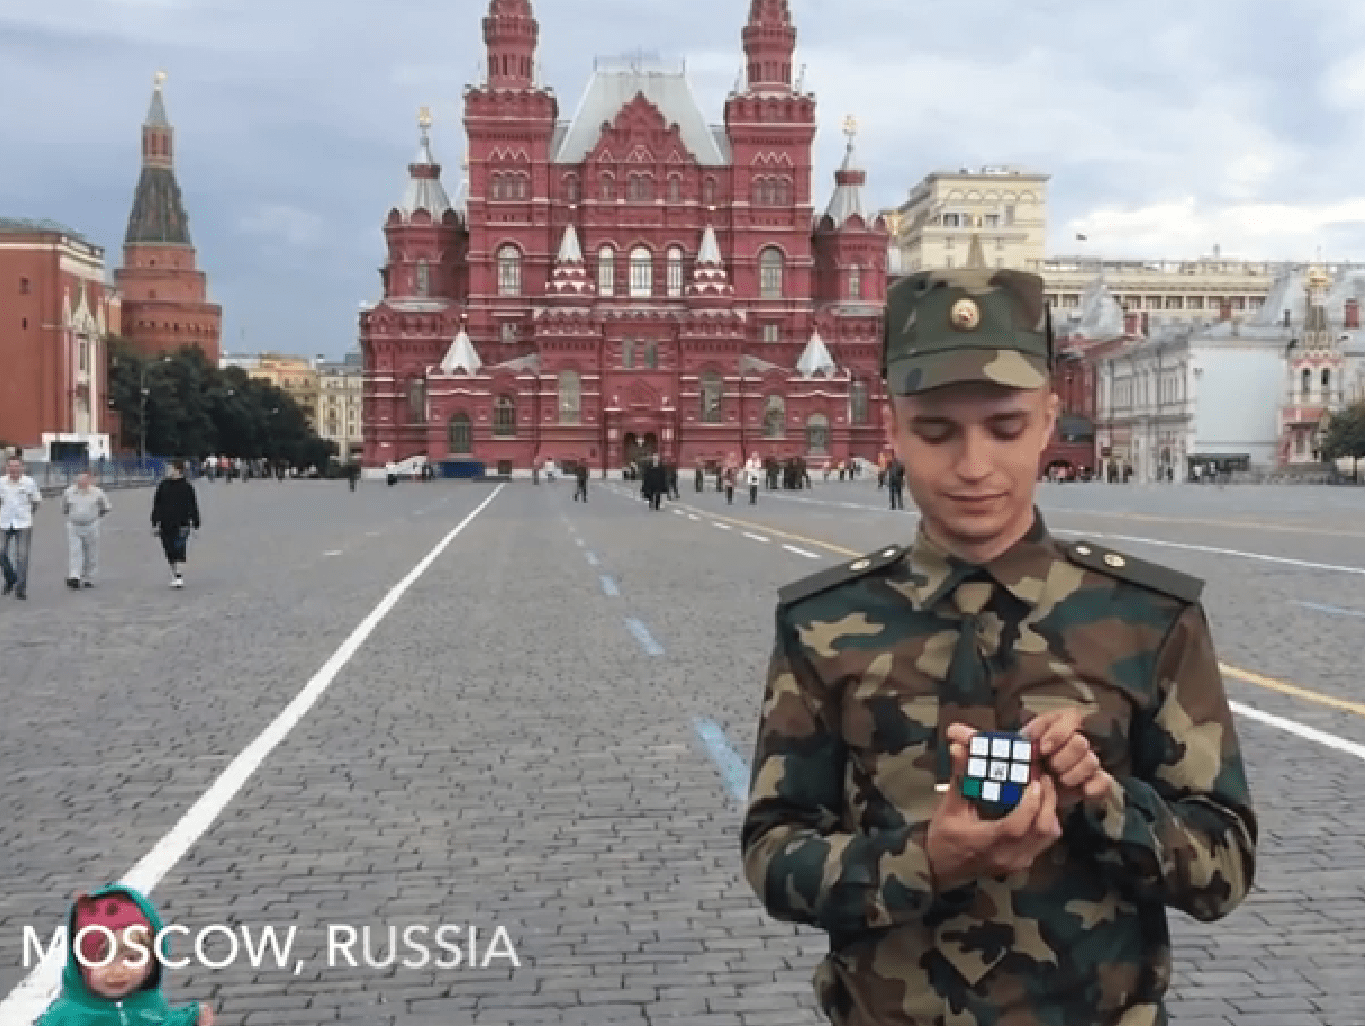 Solving a Rubik's Cube around the world